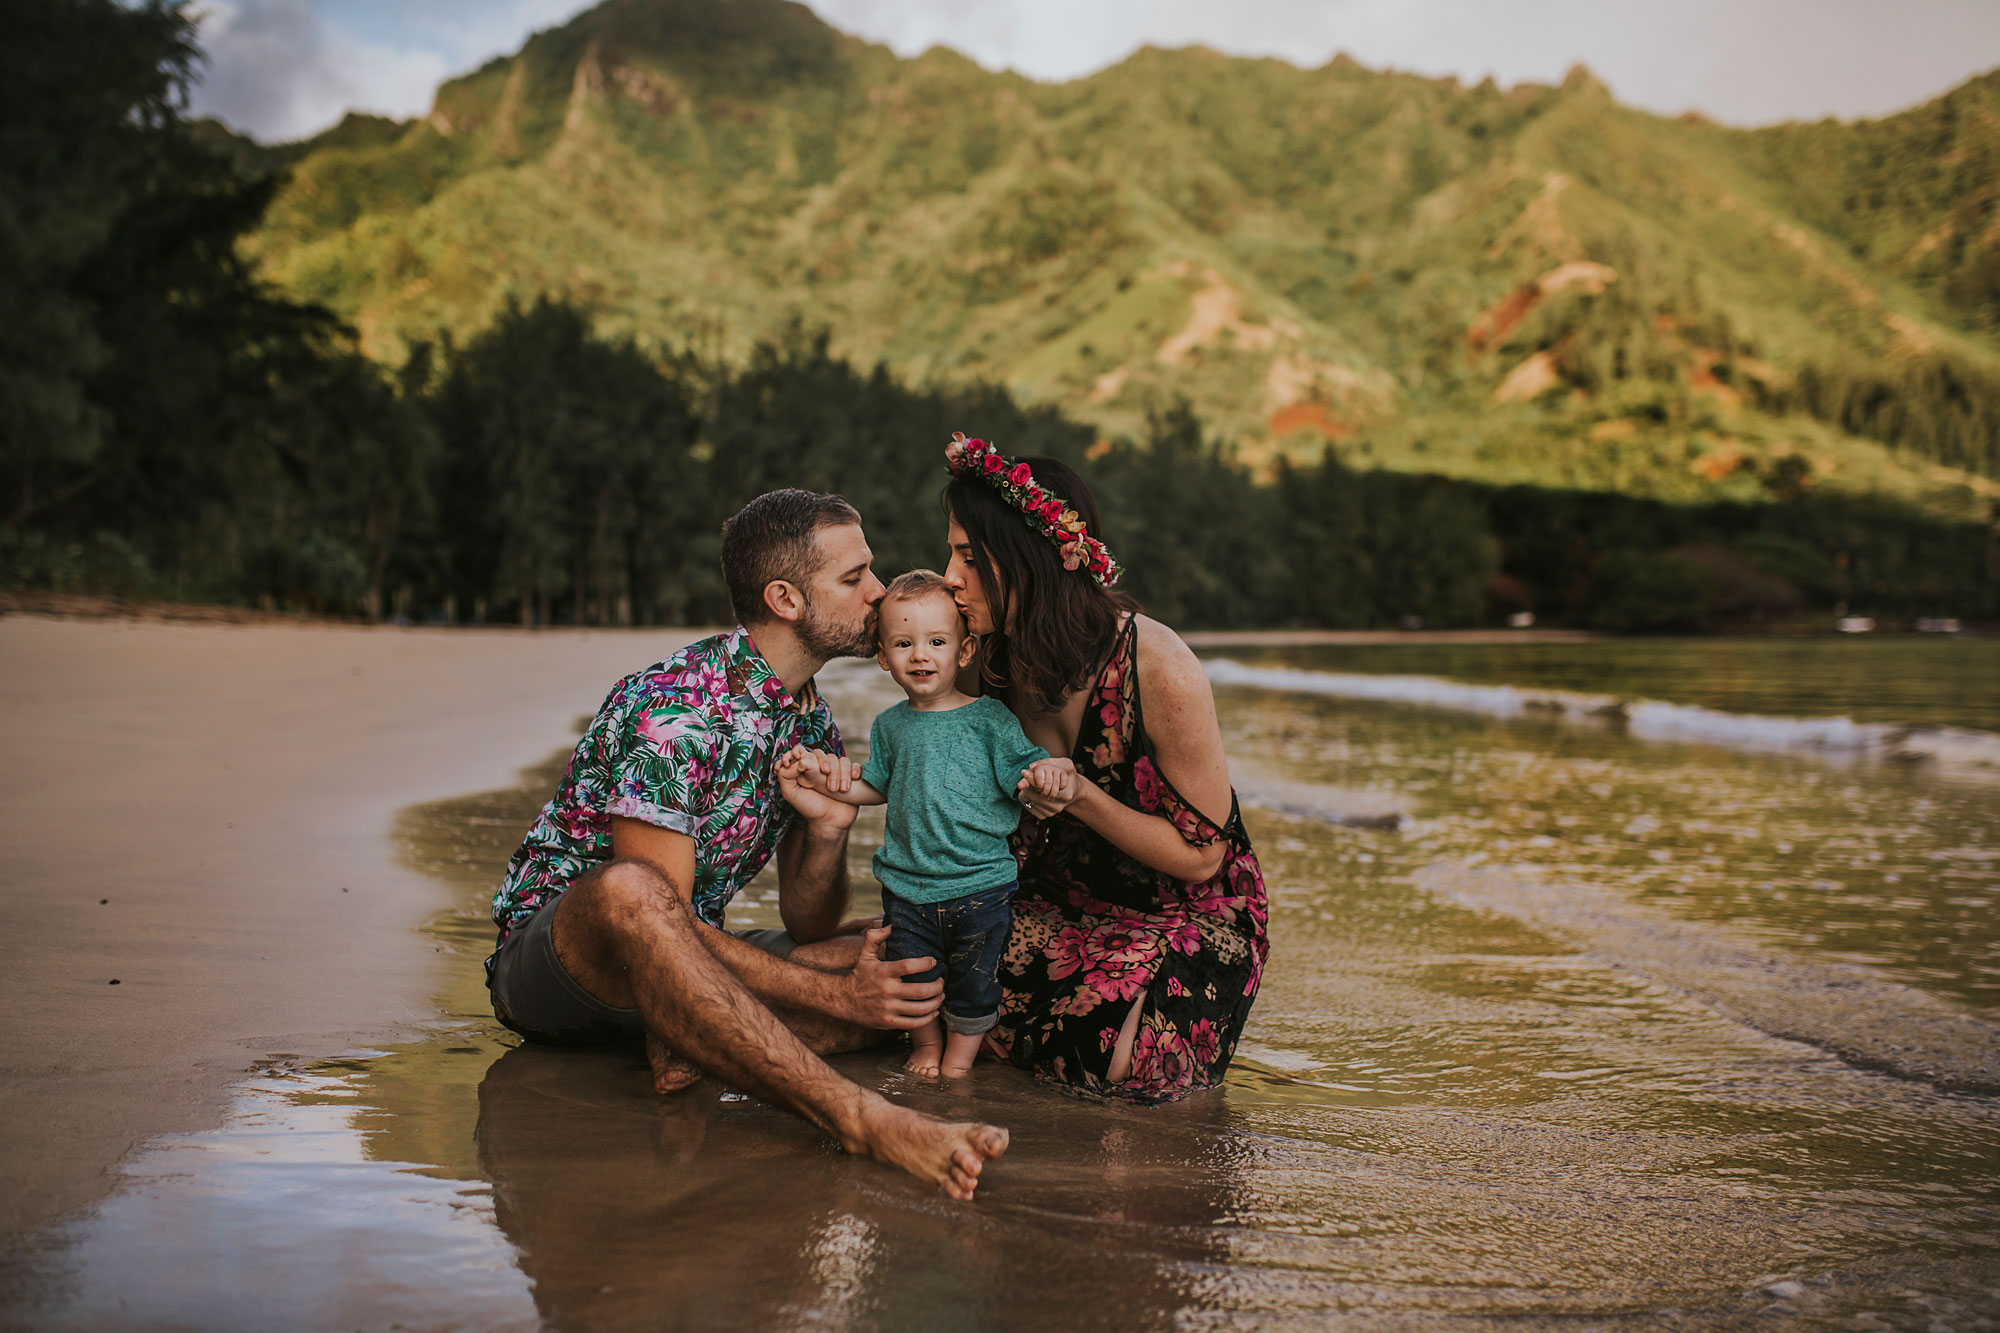 oahu-family-photographer-08.jpg